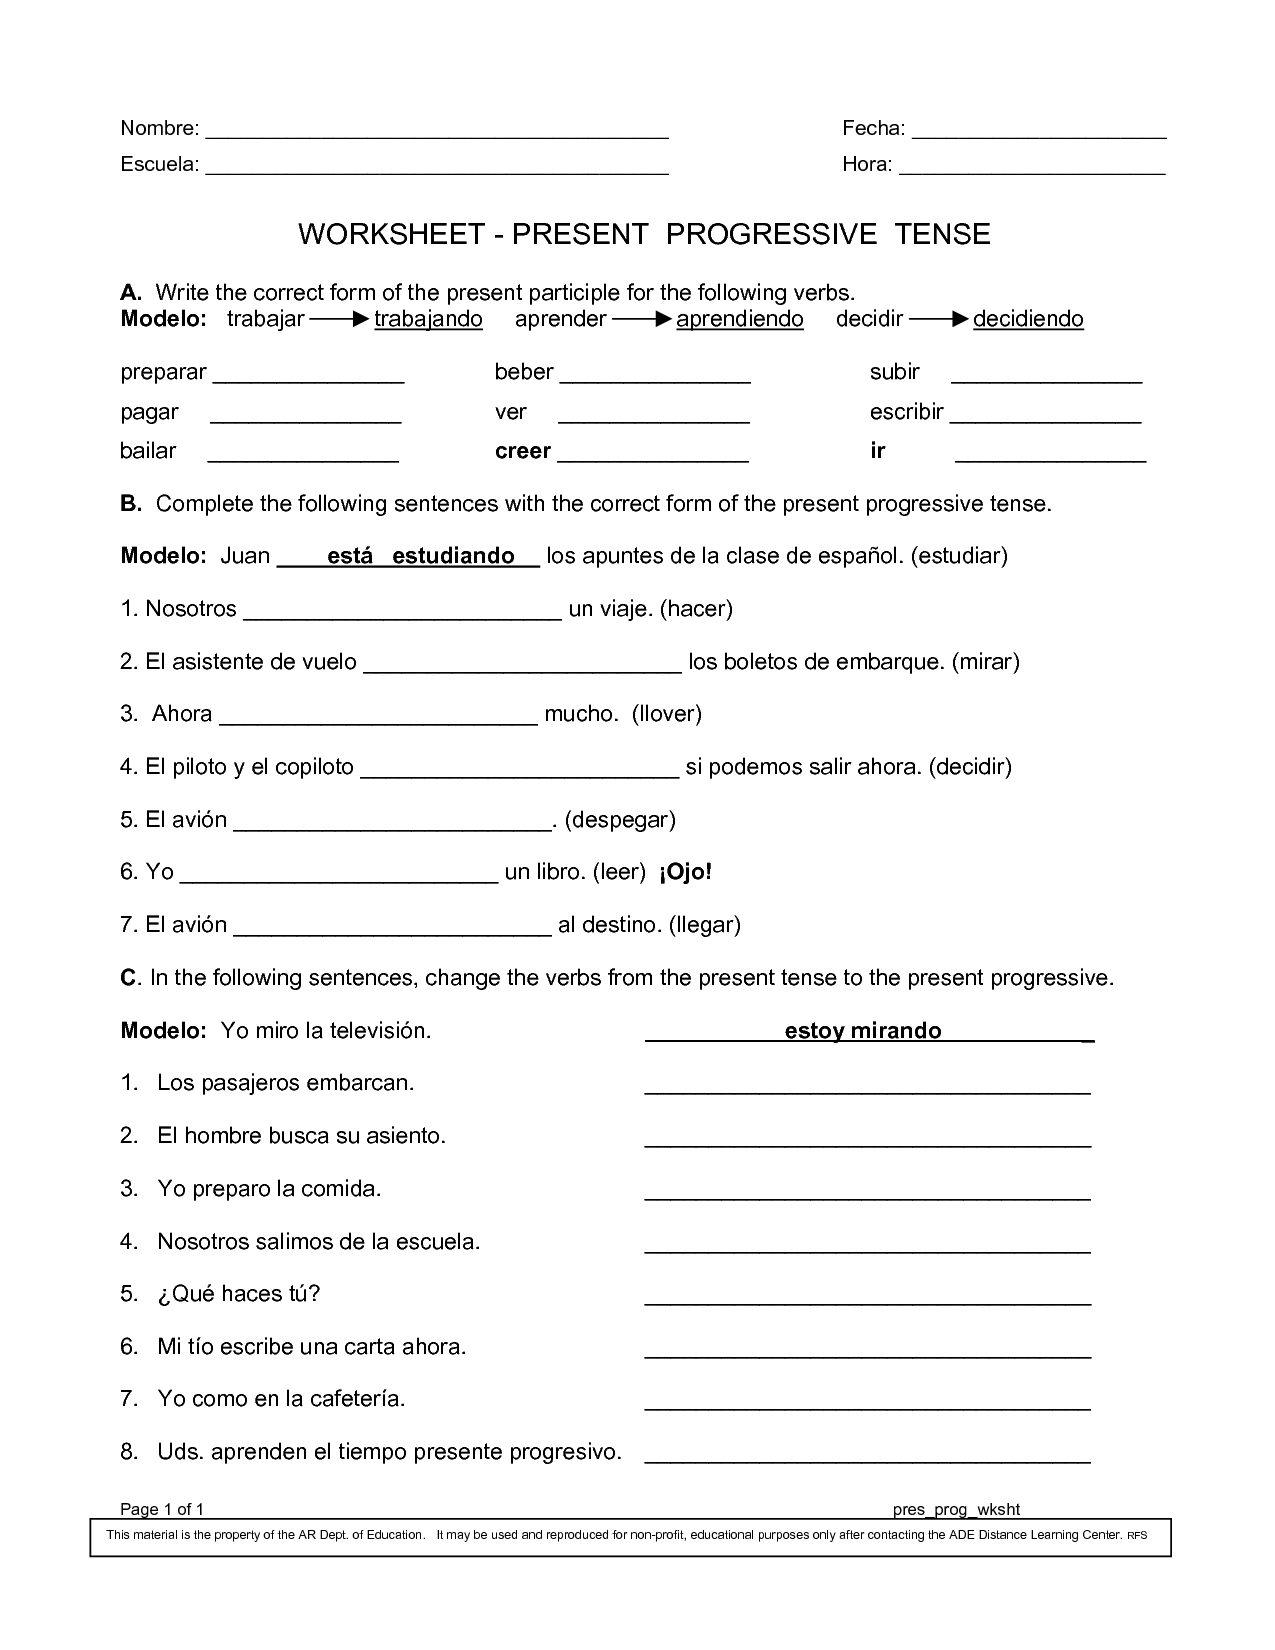 Worksheets Learning Spanish Worksheets spanish worksheets printables present progressive worksheet worksheet